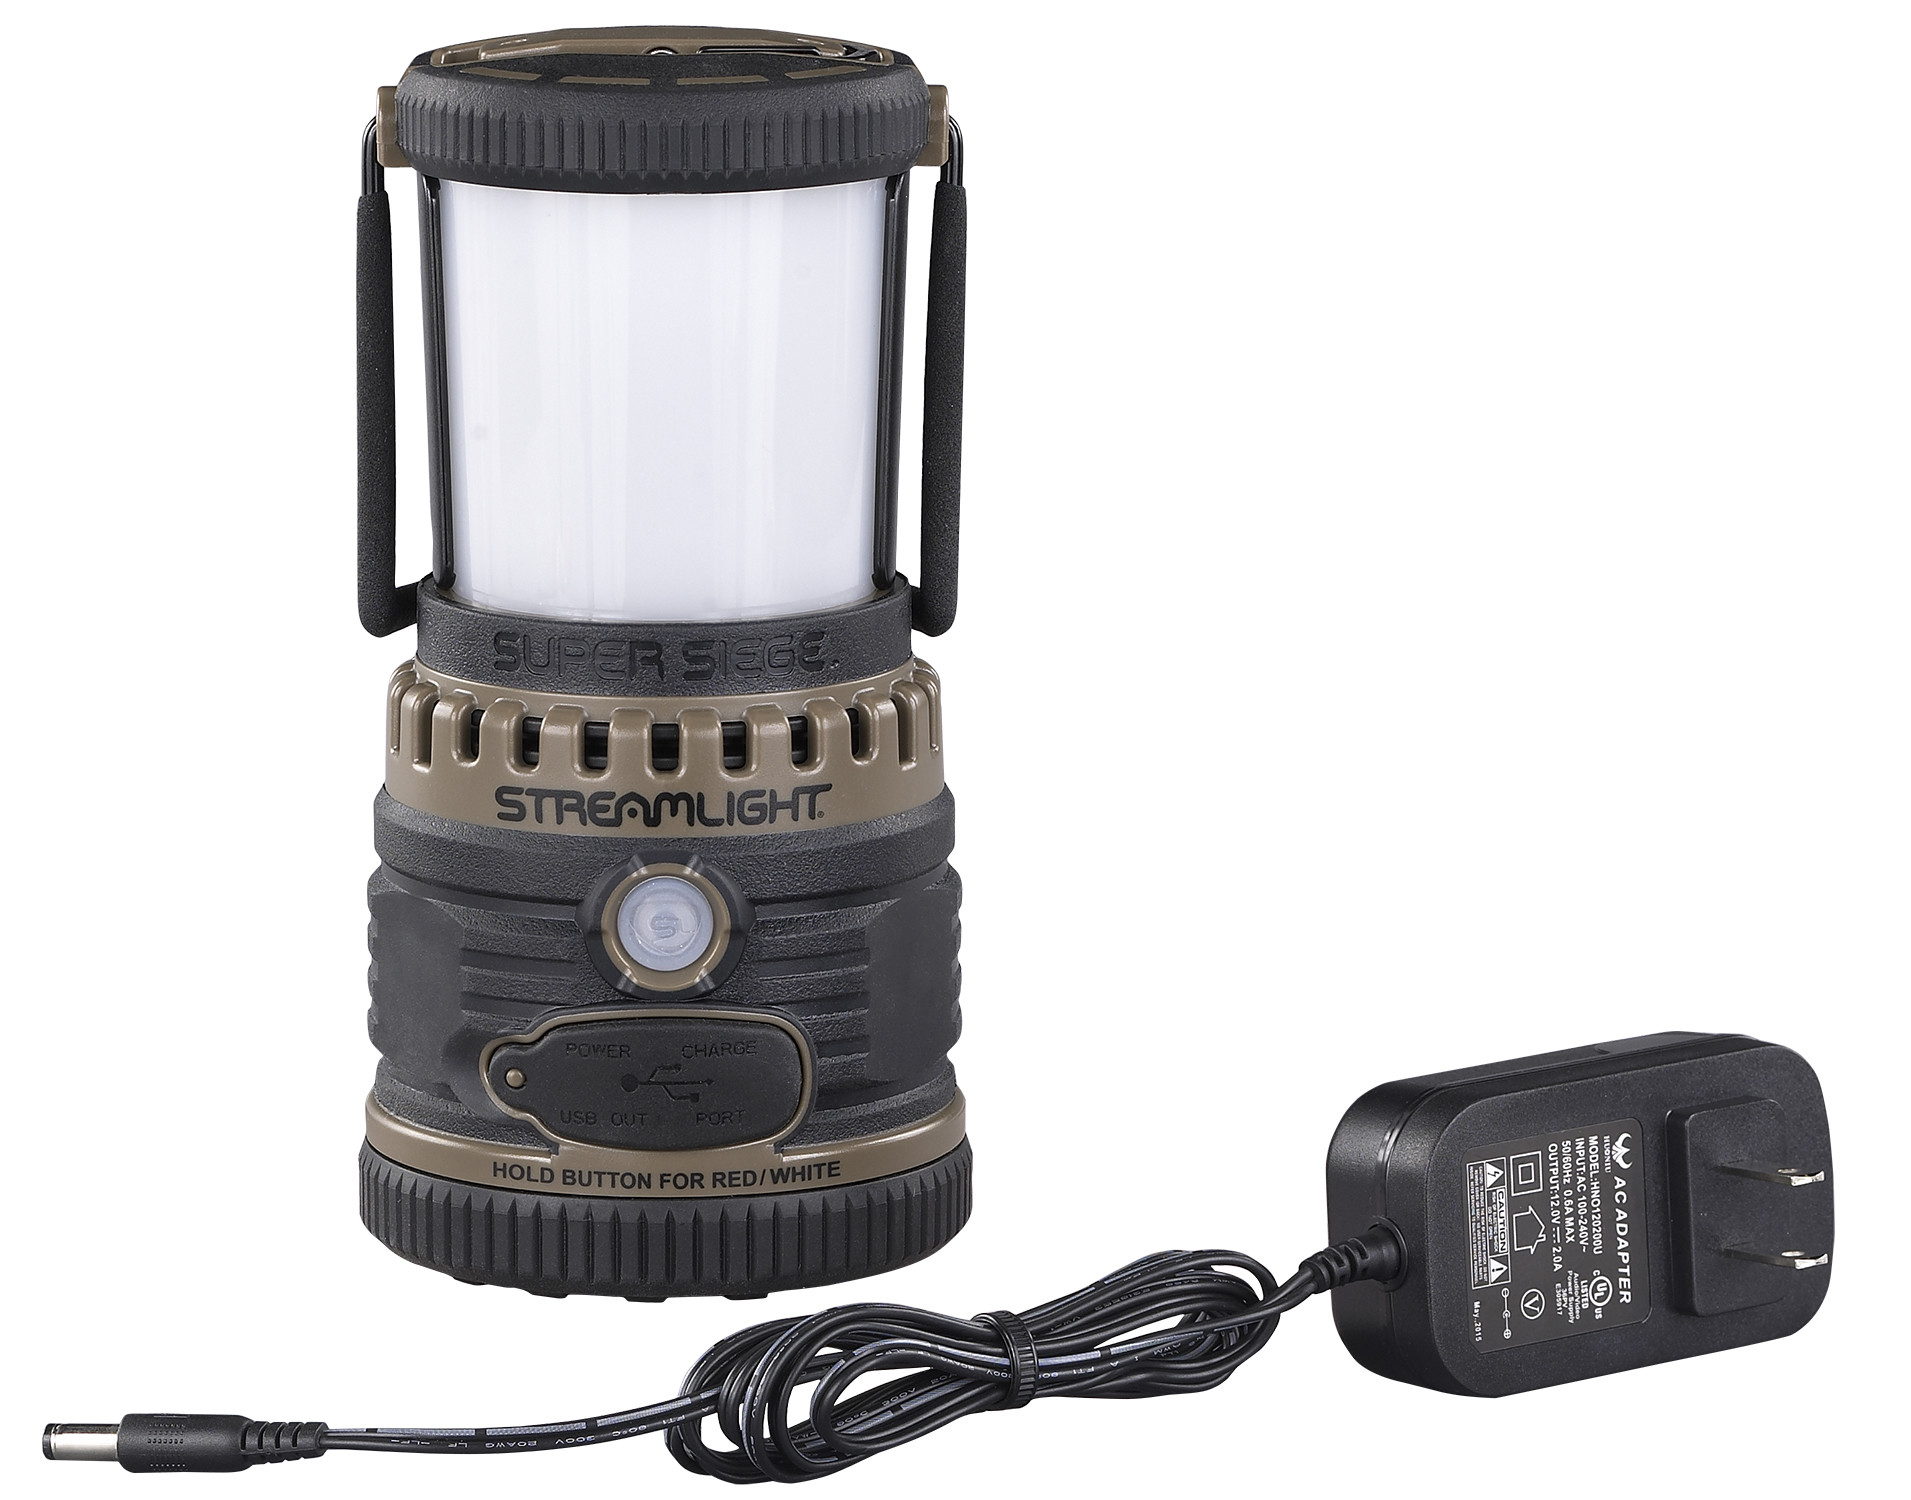 Streamlight Super Siege Rugged Rechargeable Outdoor Lantern by Streamlight